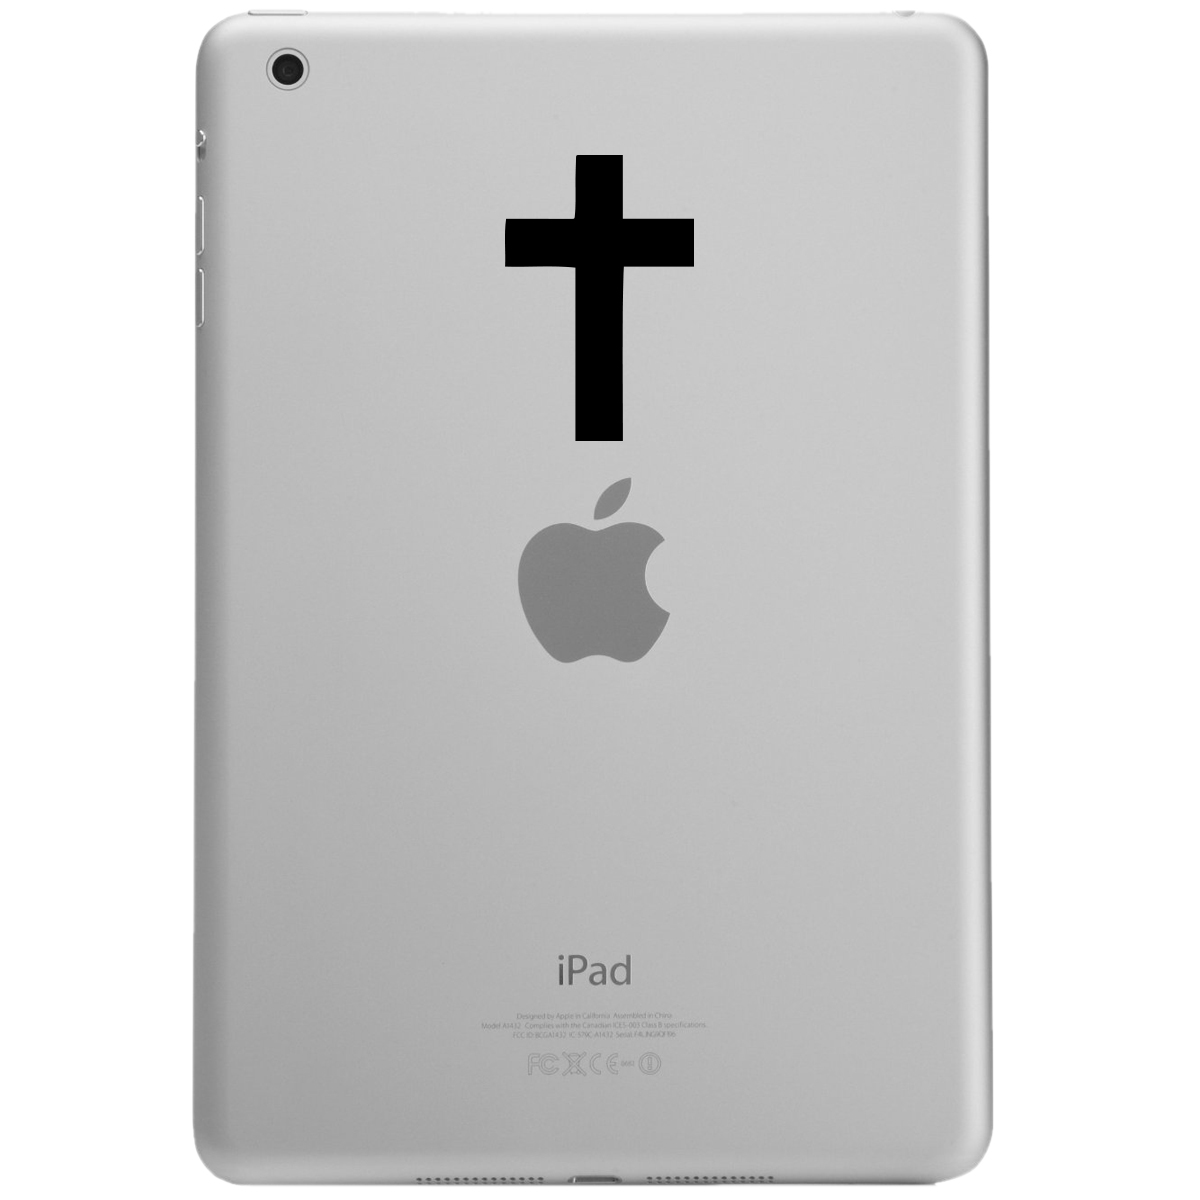 Religious Christian Cross Silhouette iPad Tablet Vinyl Sticker Decal